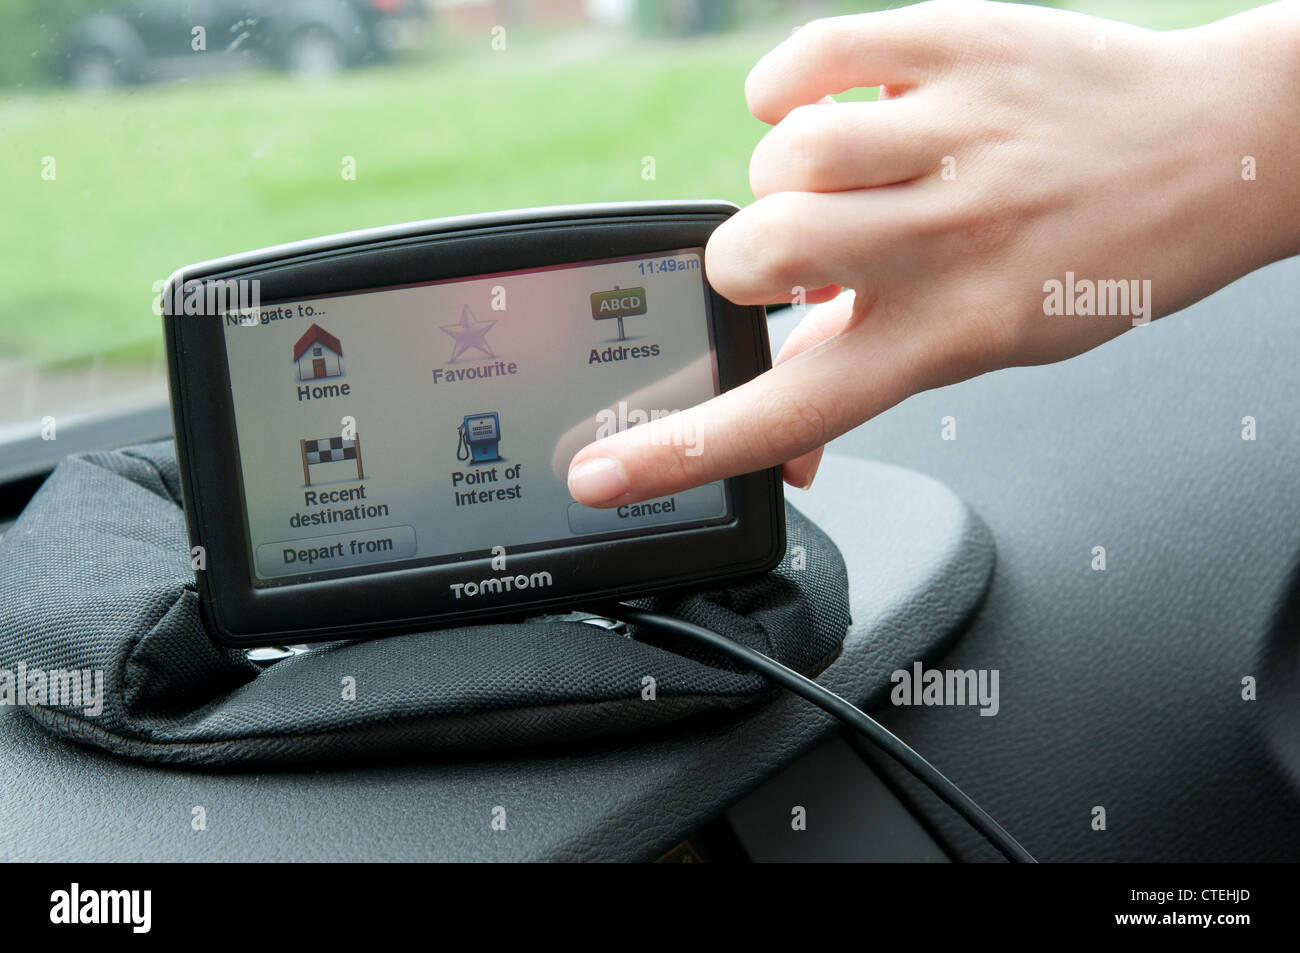 Setting up a Sat Nav device in a car - Stock Image